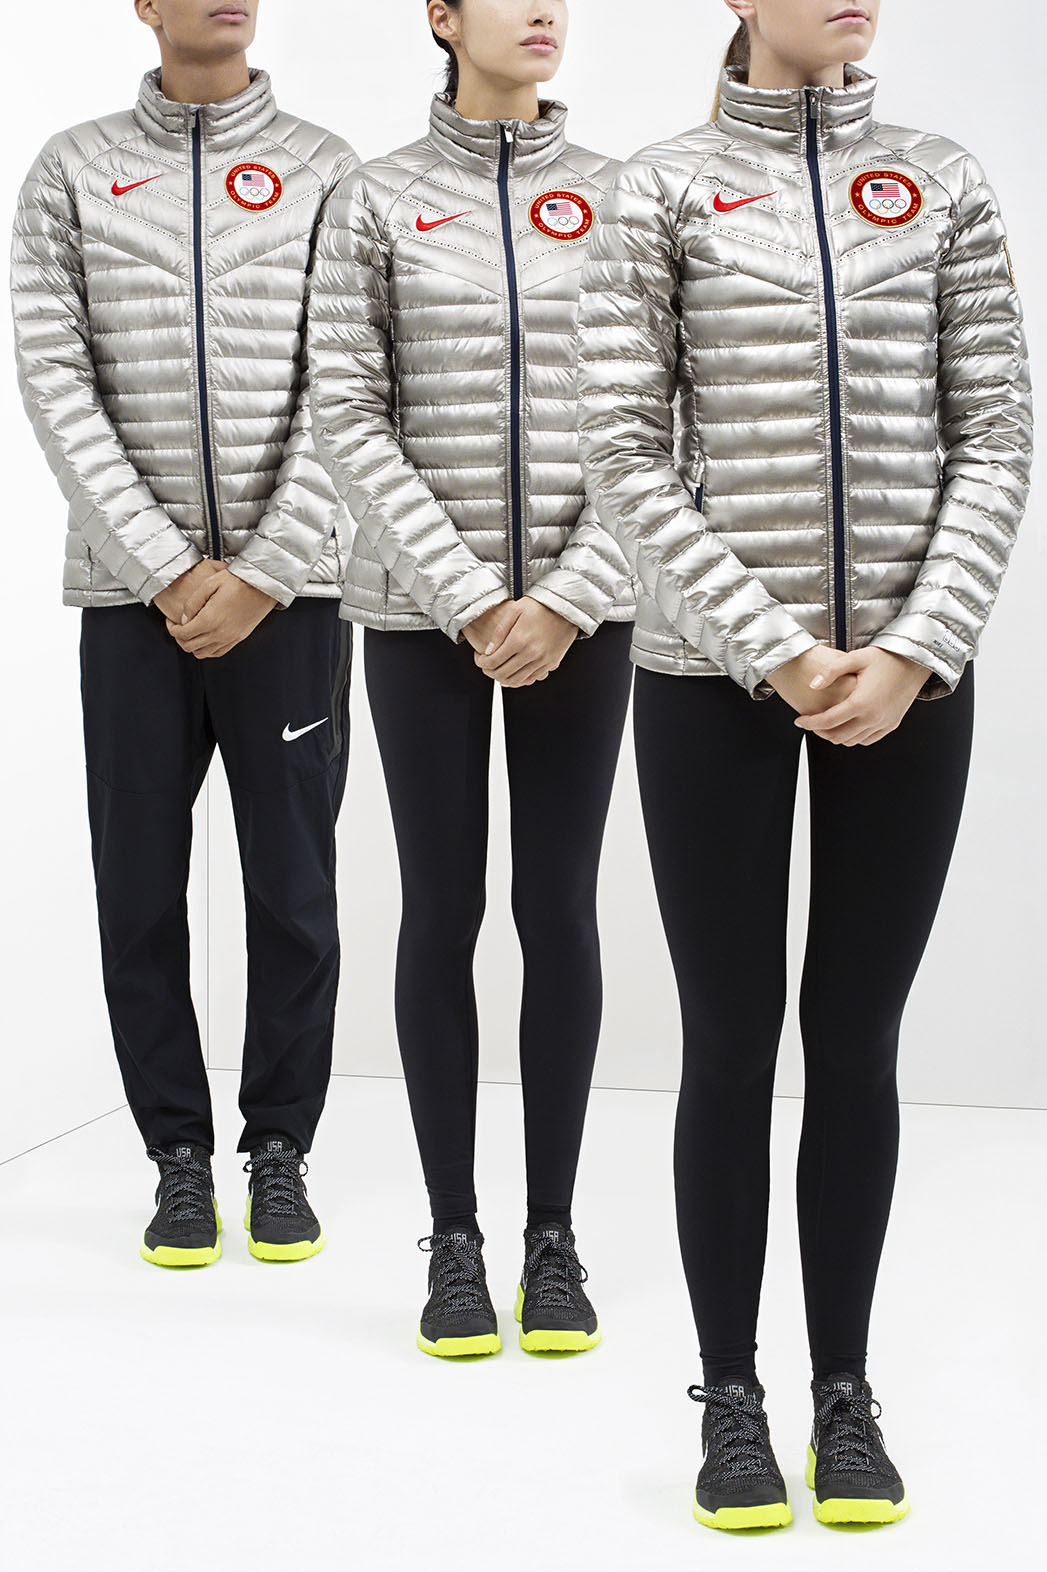 Nike Podium Apparel  Clothing Sponsorship